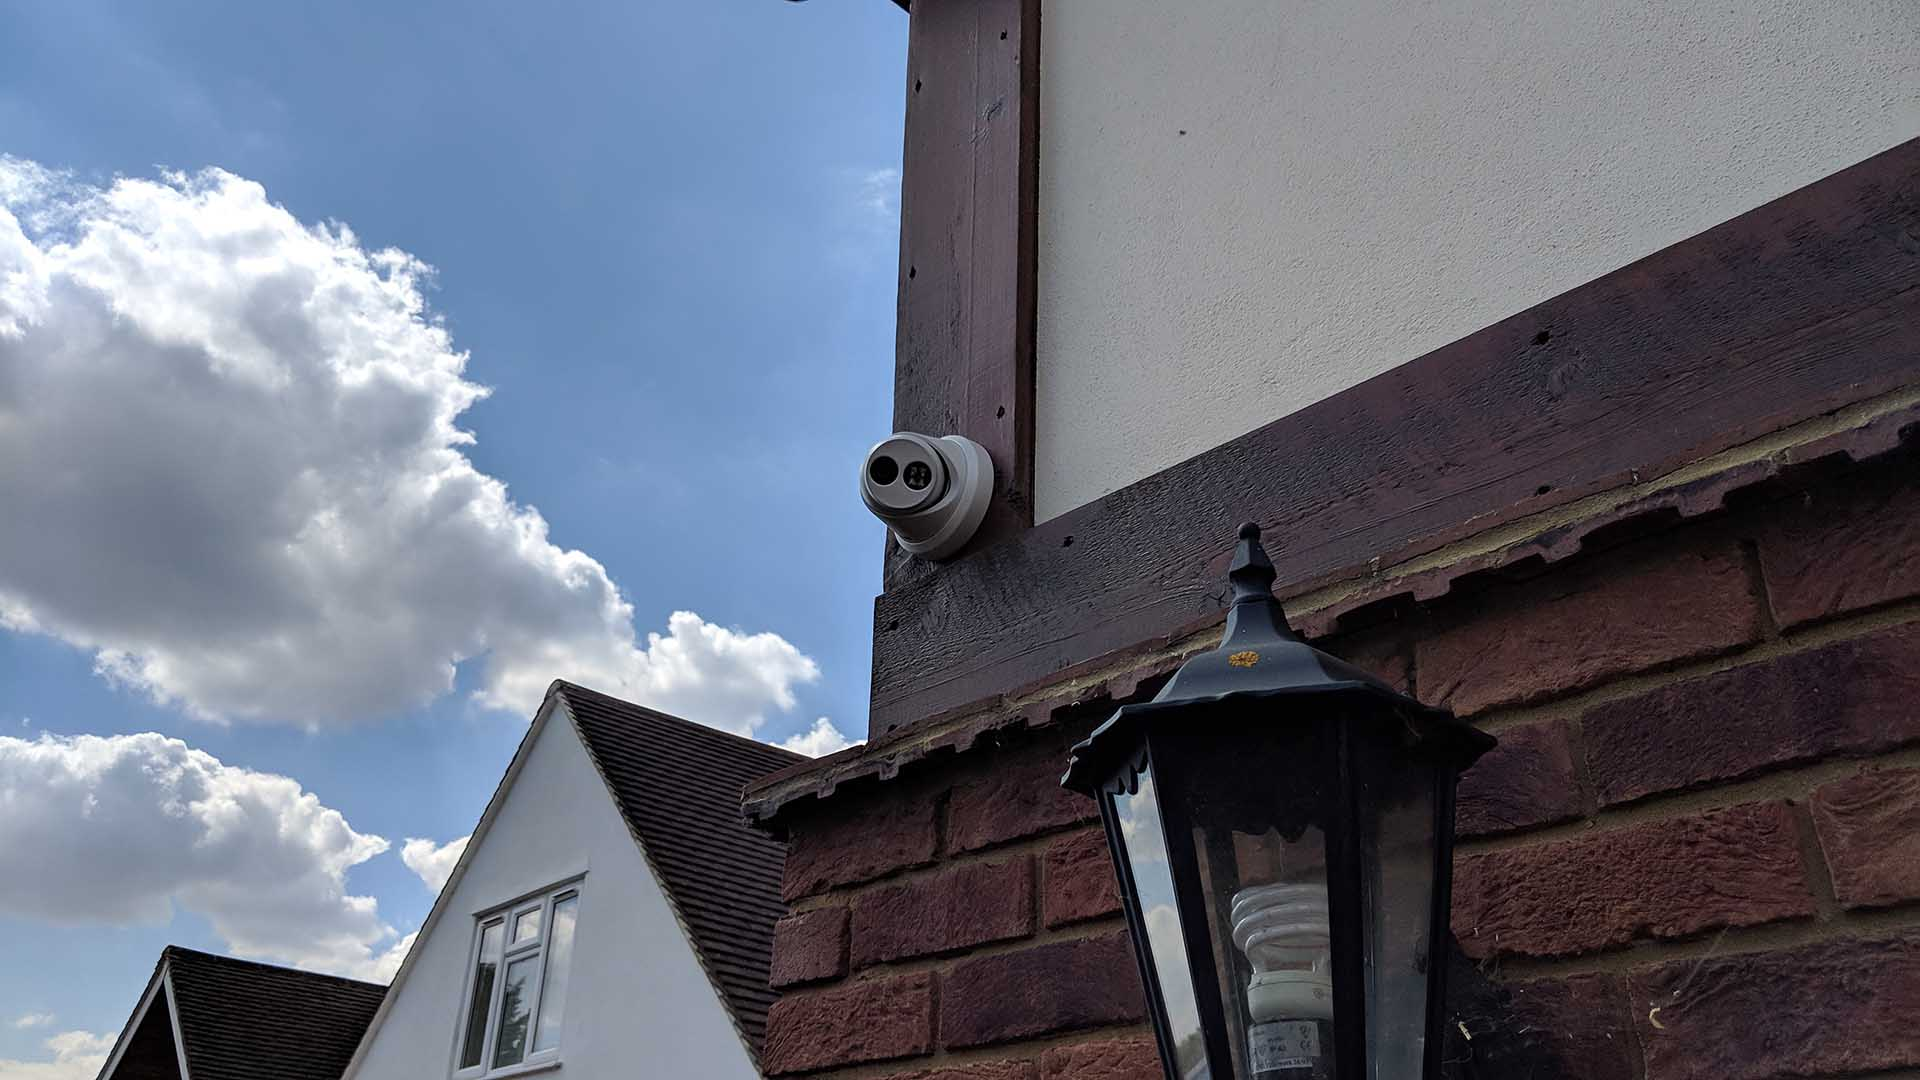 4K CCTV Installation in Noak Hill, Billericay